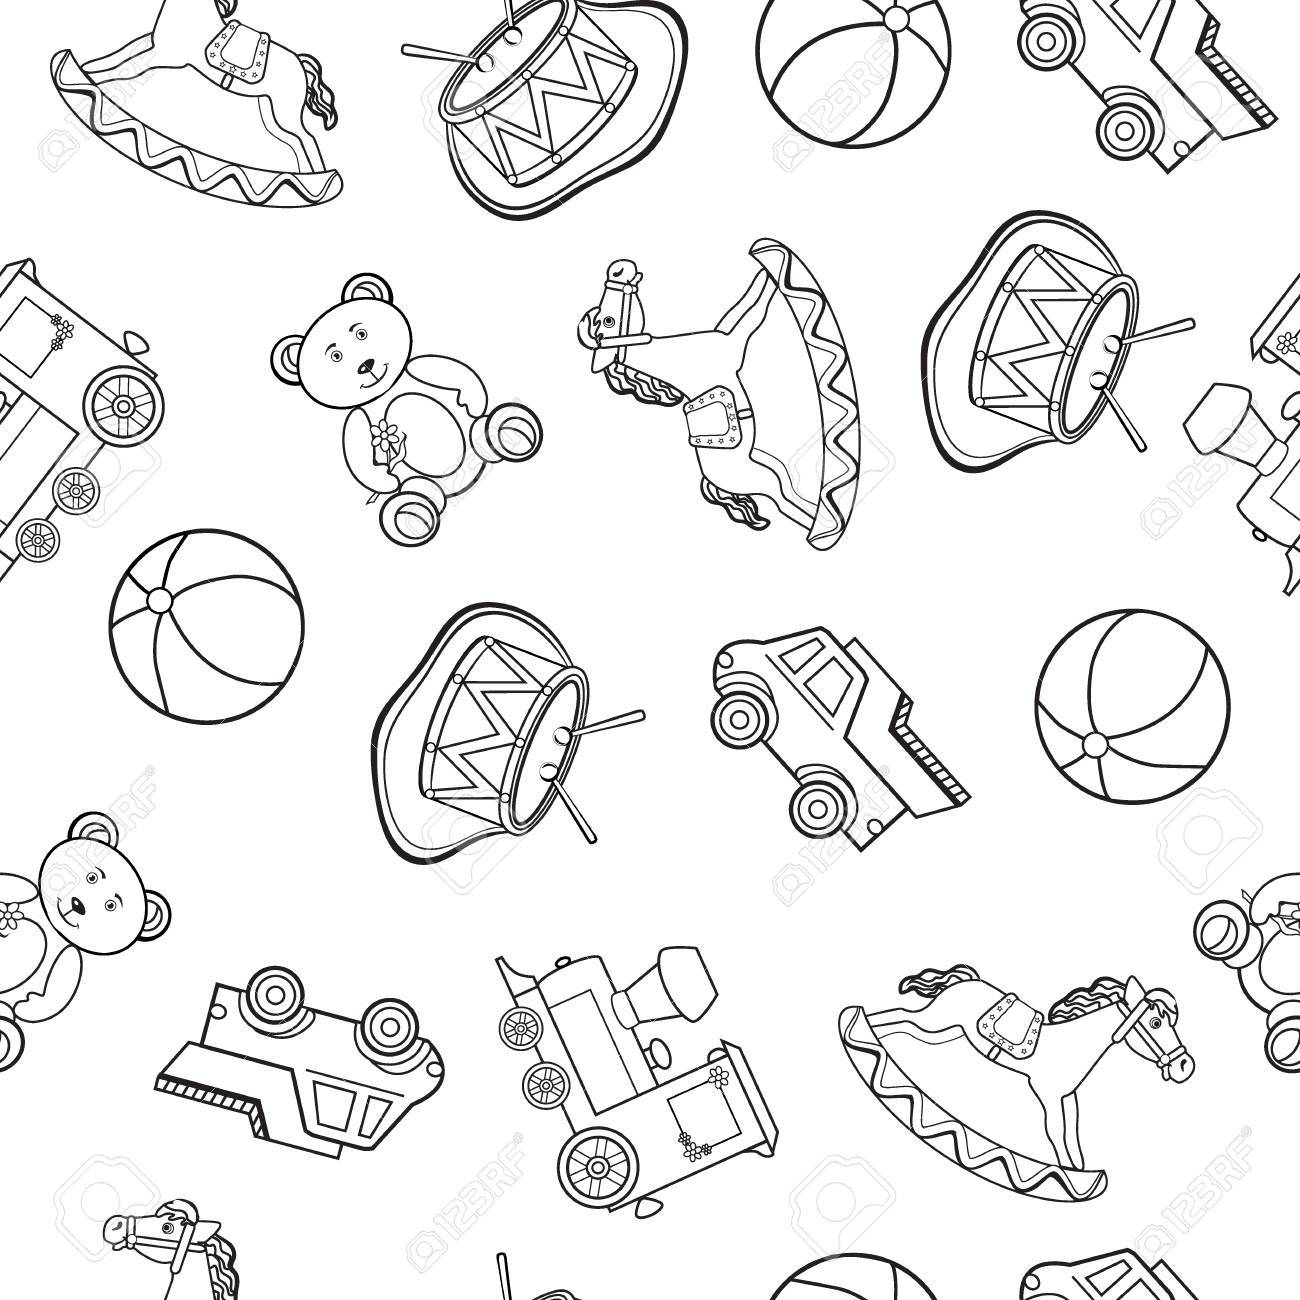 Baby Toys Drawing : Toy drawing at getdrawings free for personal use